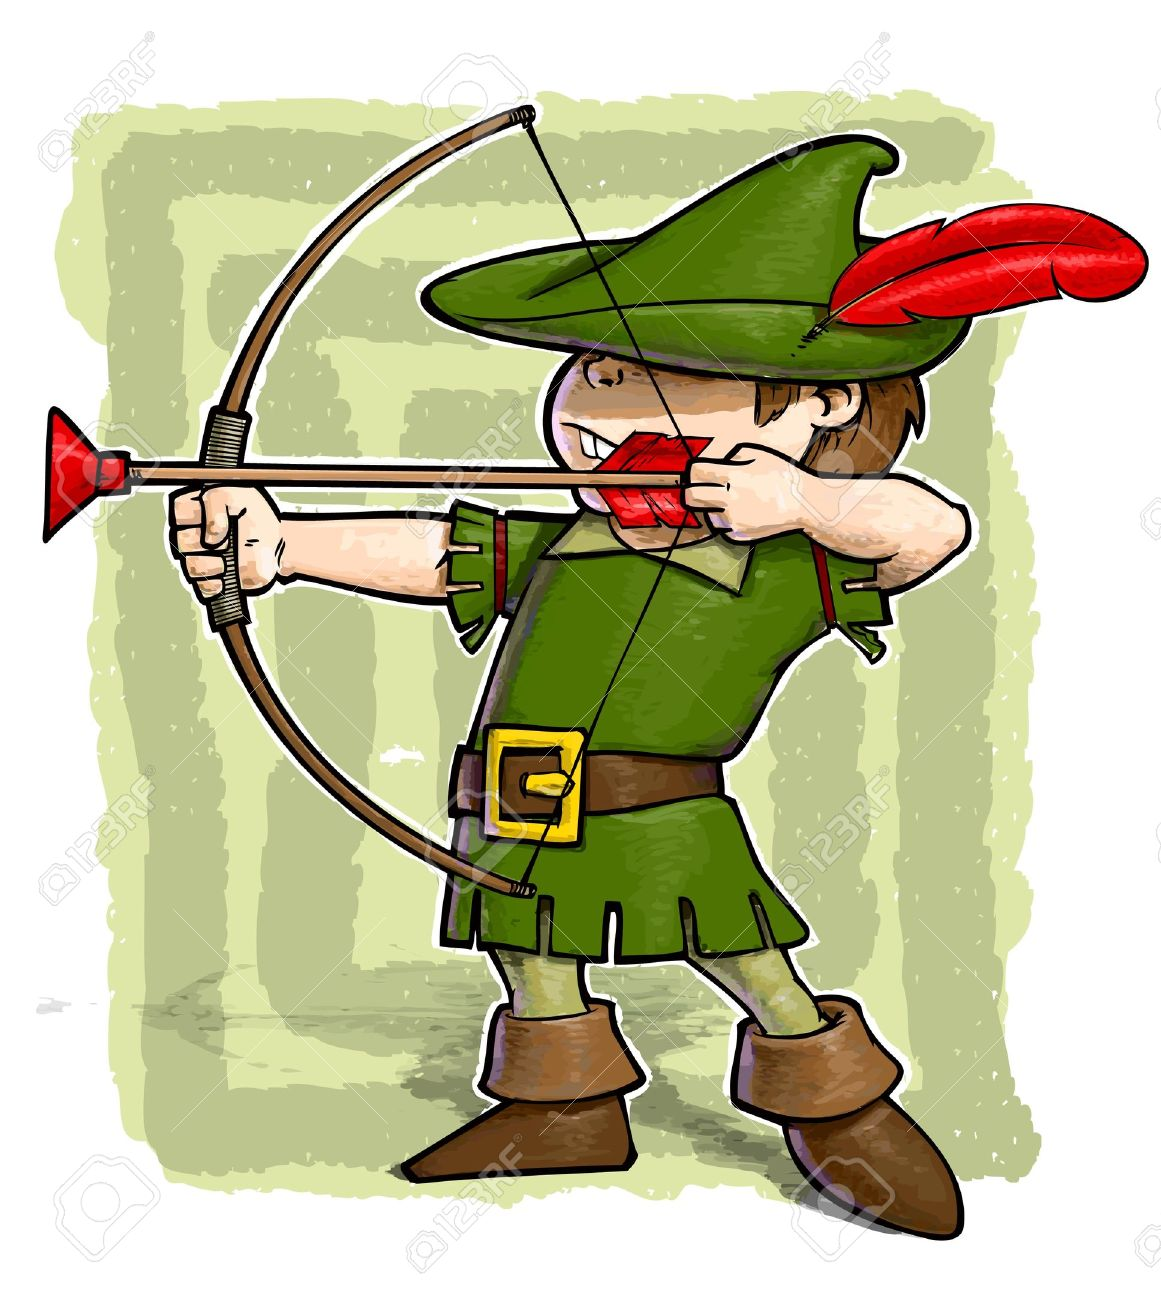 A grunge illustration of a boy with a bow and arrow dressed as Robin Hood Stock Vector - 12290336